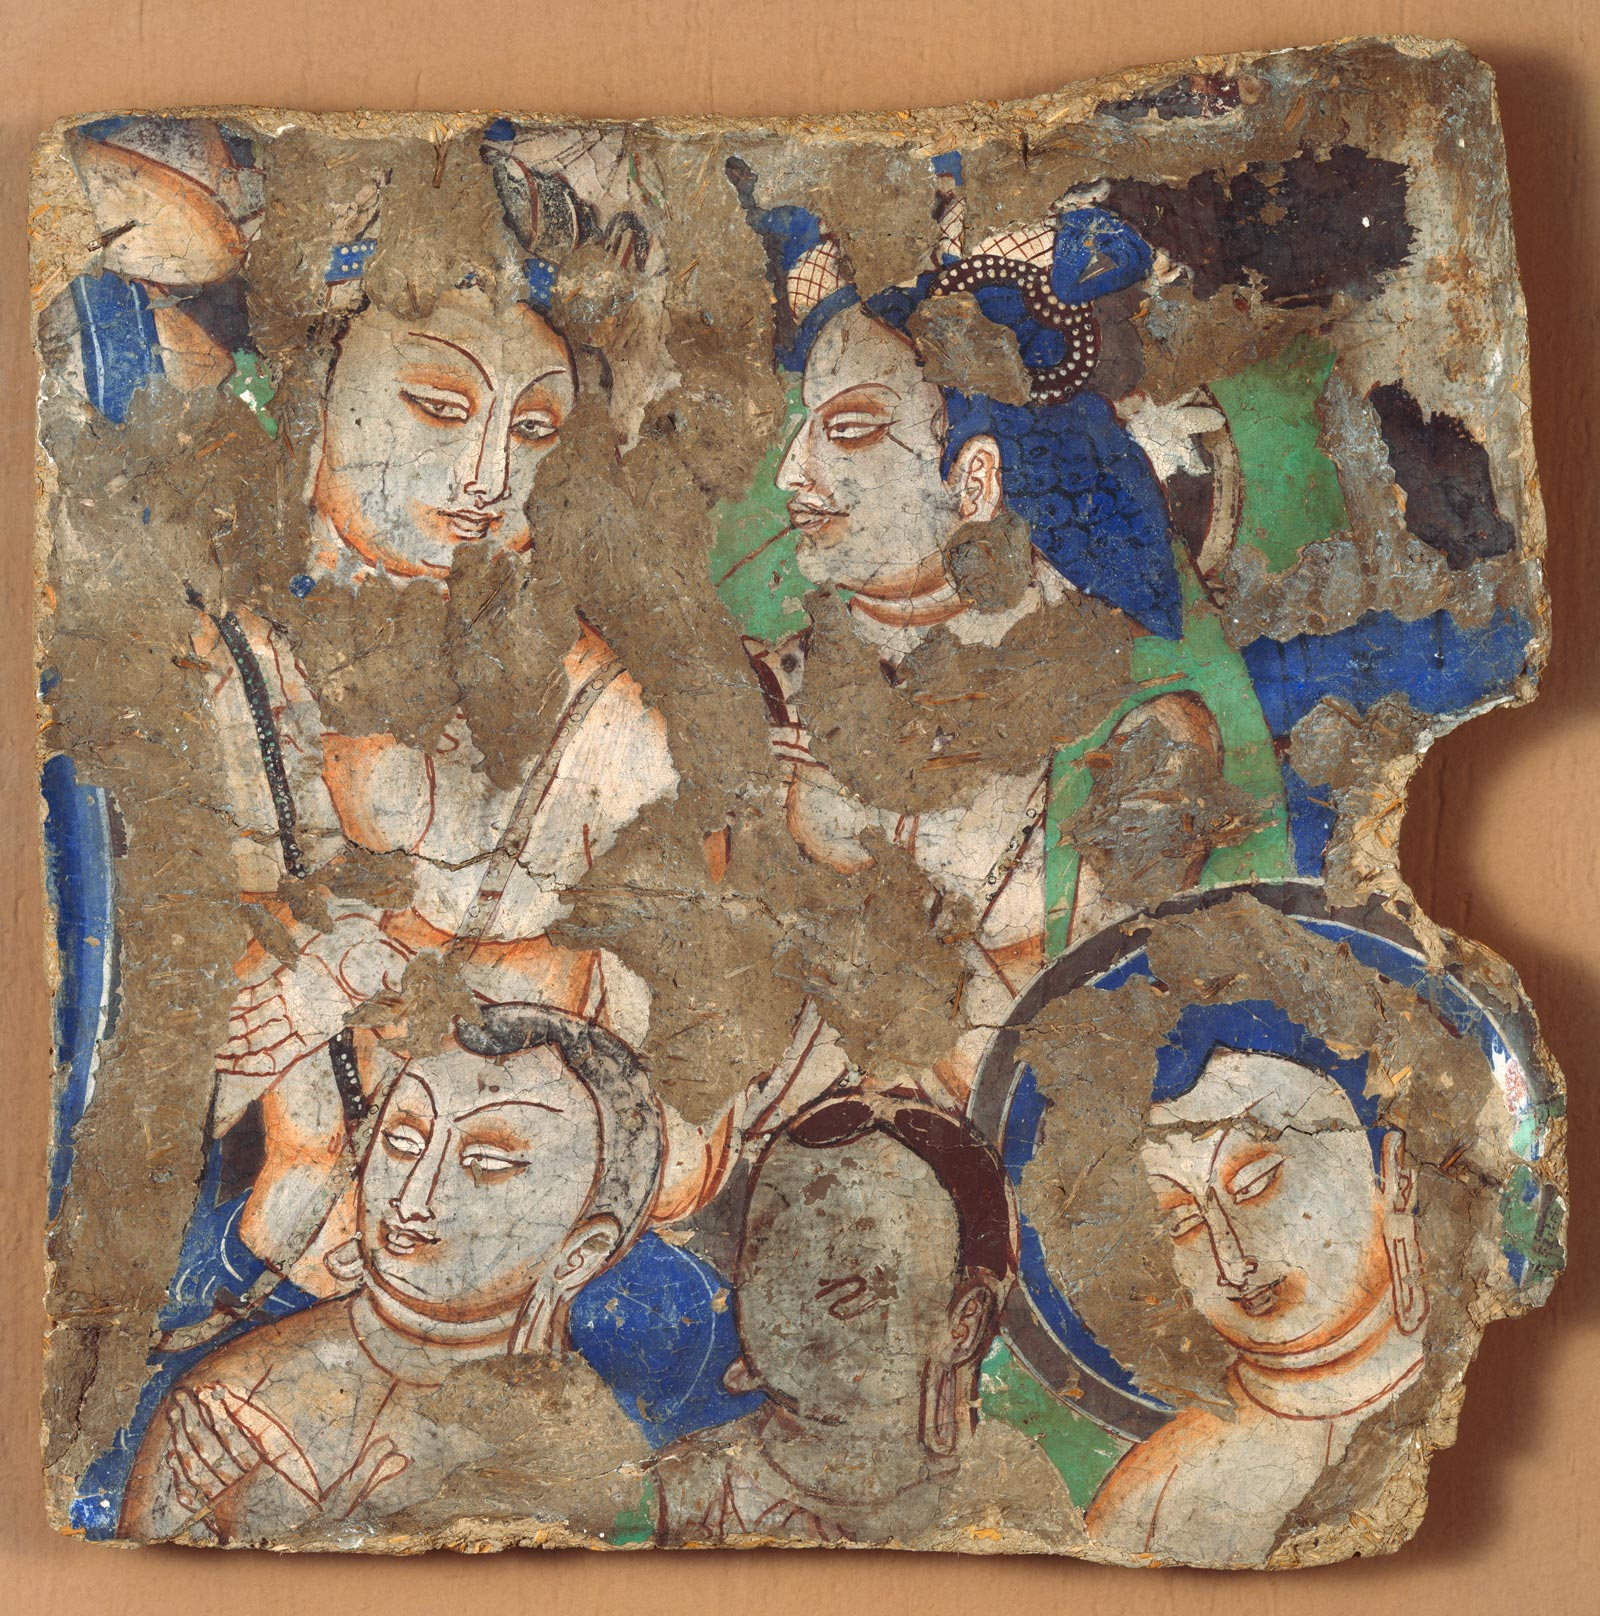 Mural fragment depicting an audience listening to the Buddha preaching